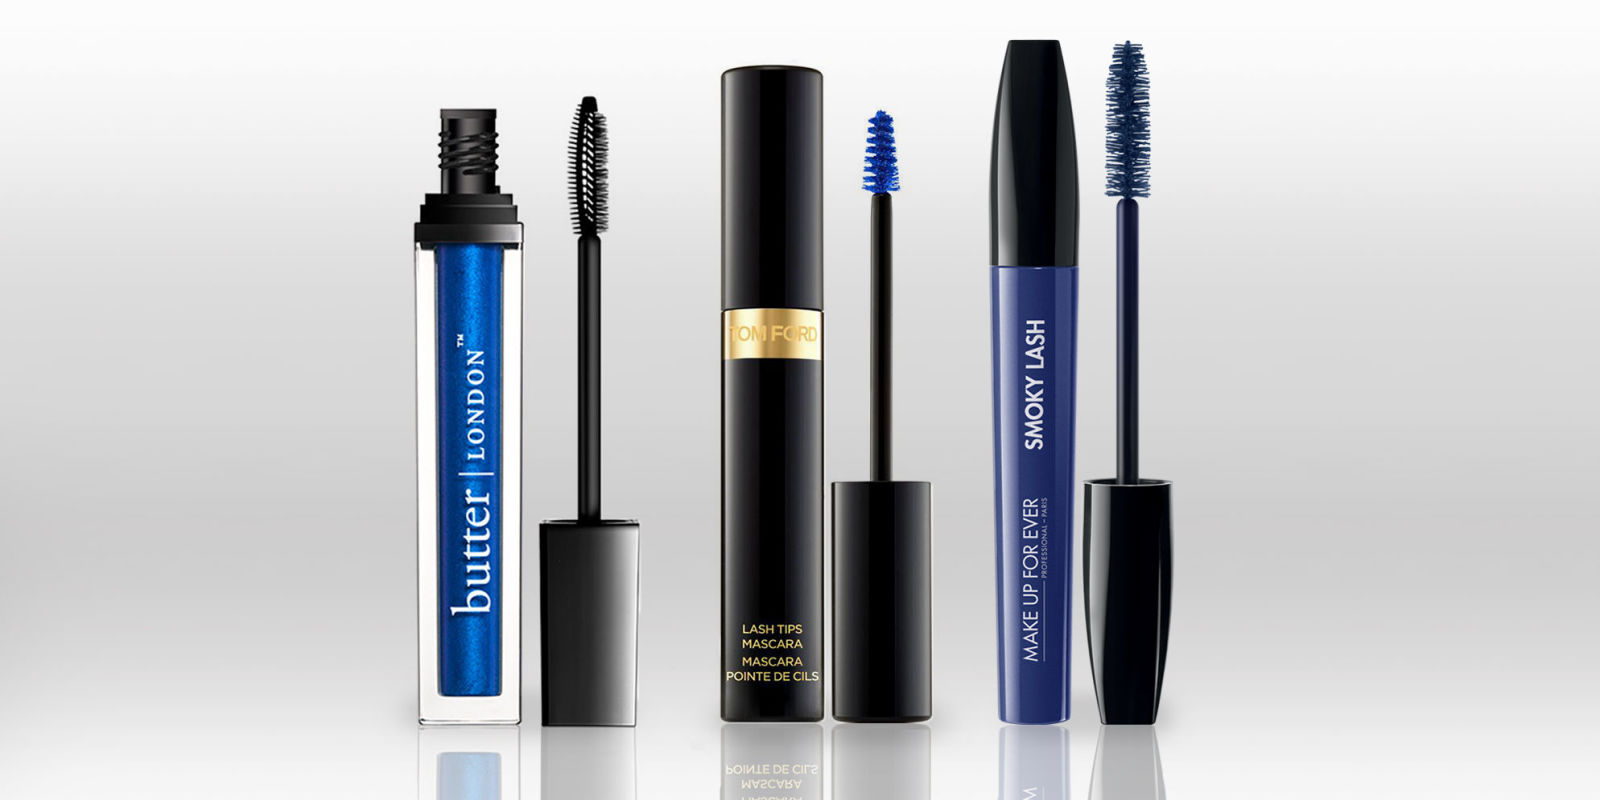 Kitchen Dining 9 Best Blue Mascara Shades Of 2018 For Every Eye Color